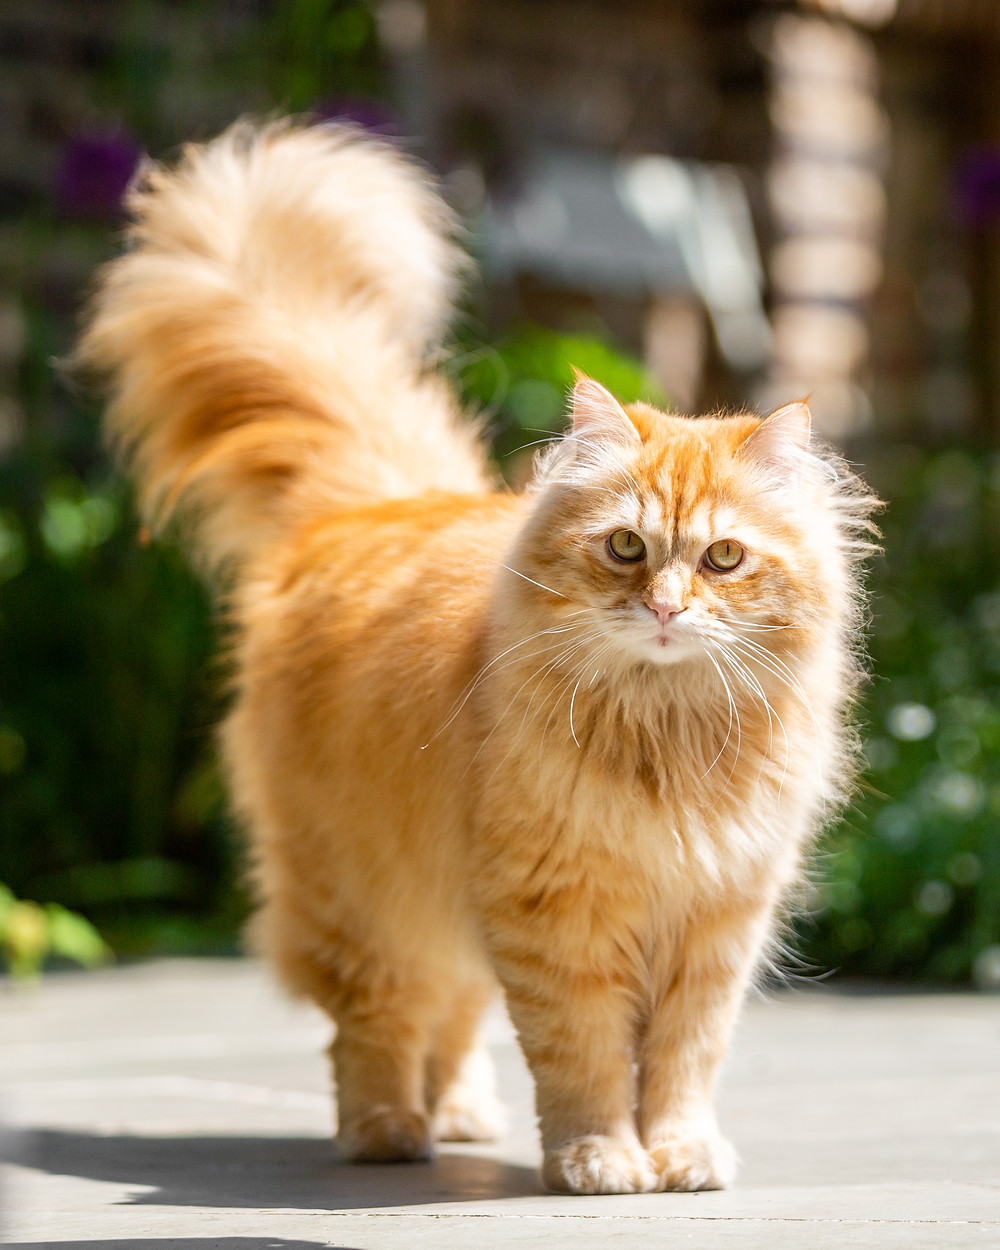 Cat photography in London. A beautiful ginger cat posing